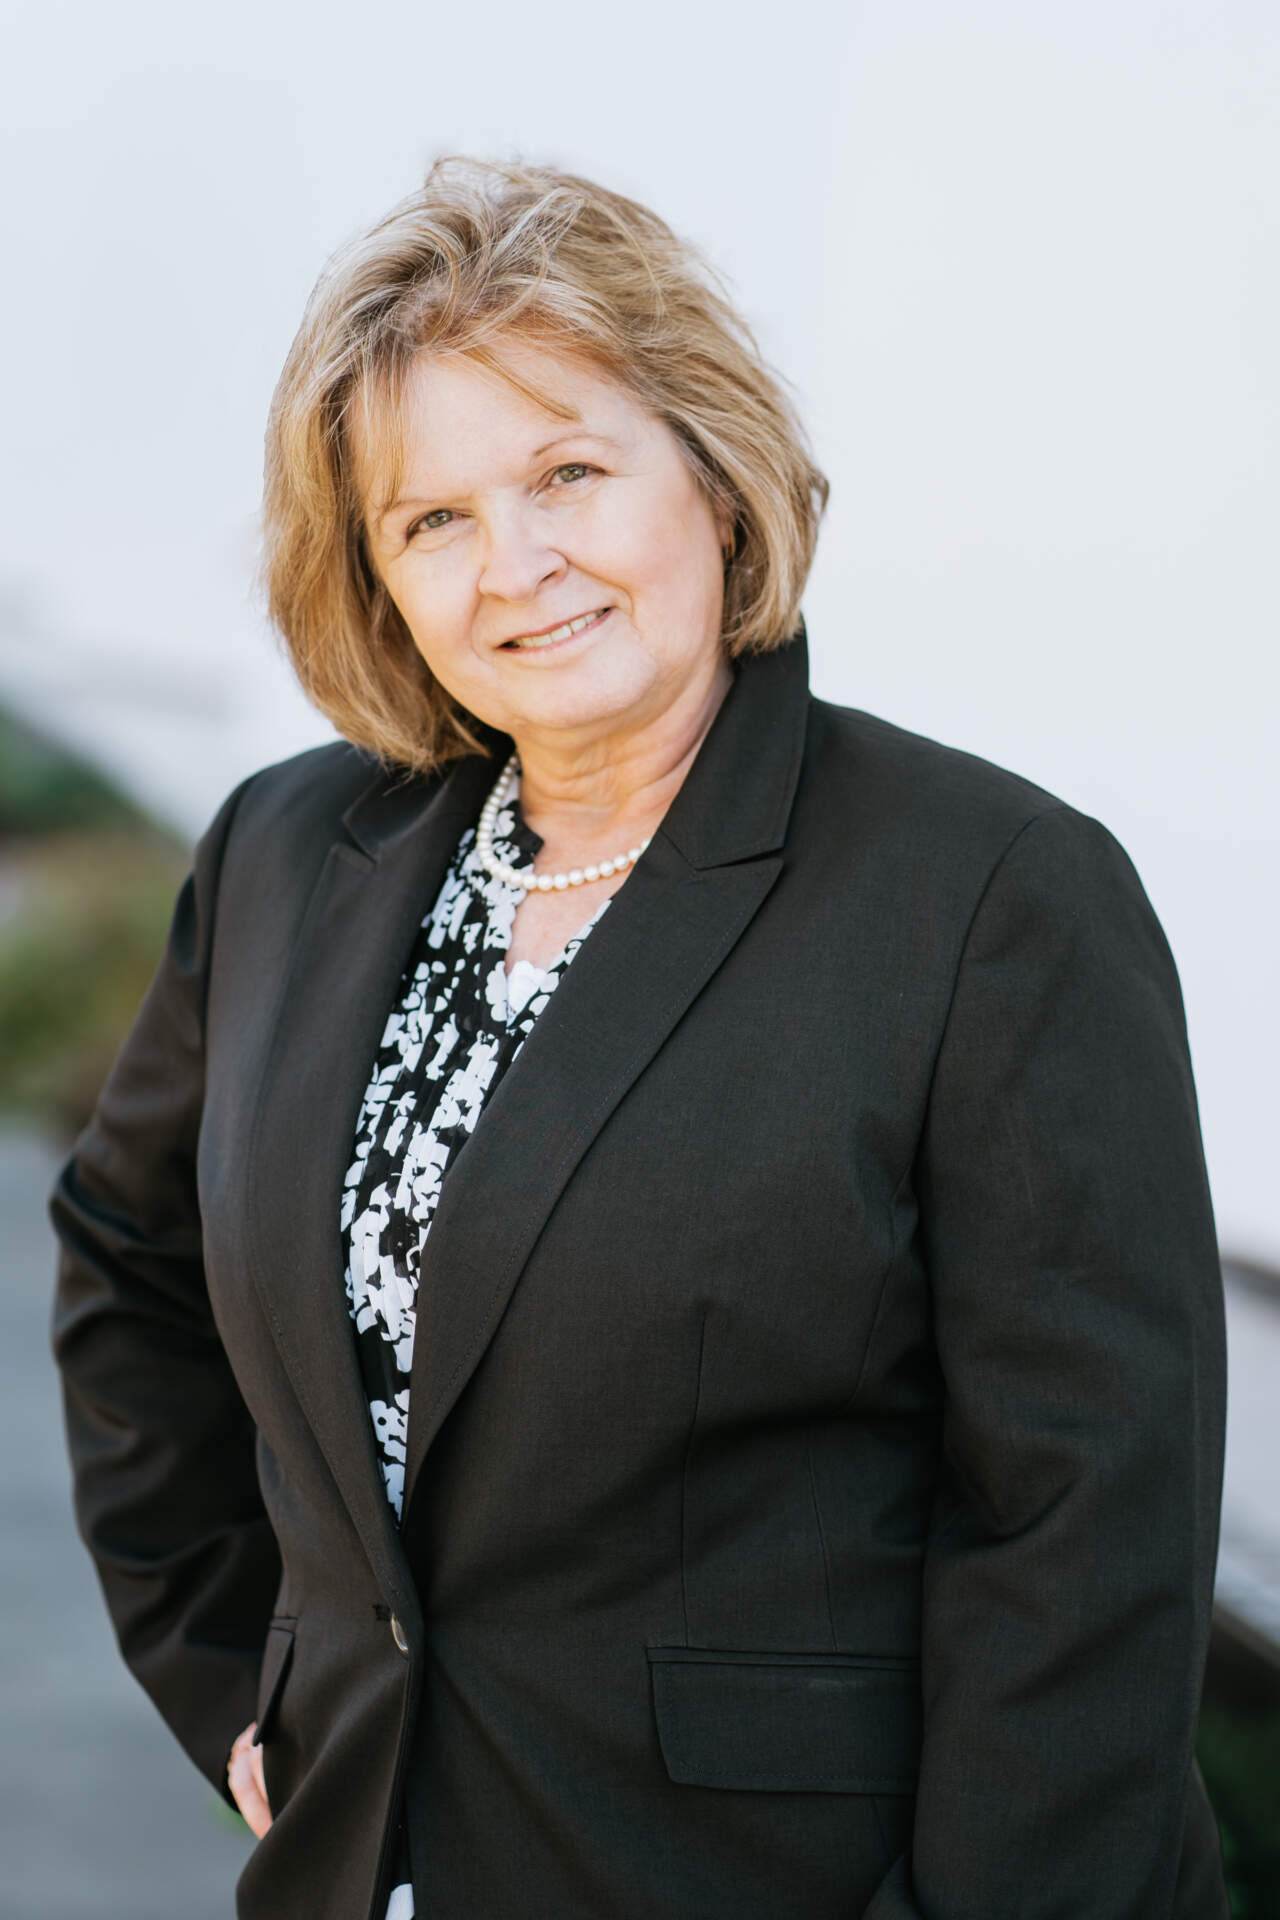 Jeanette Hall Administrative Assistant at Blakely Financial